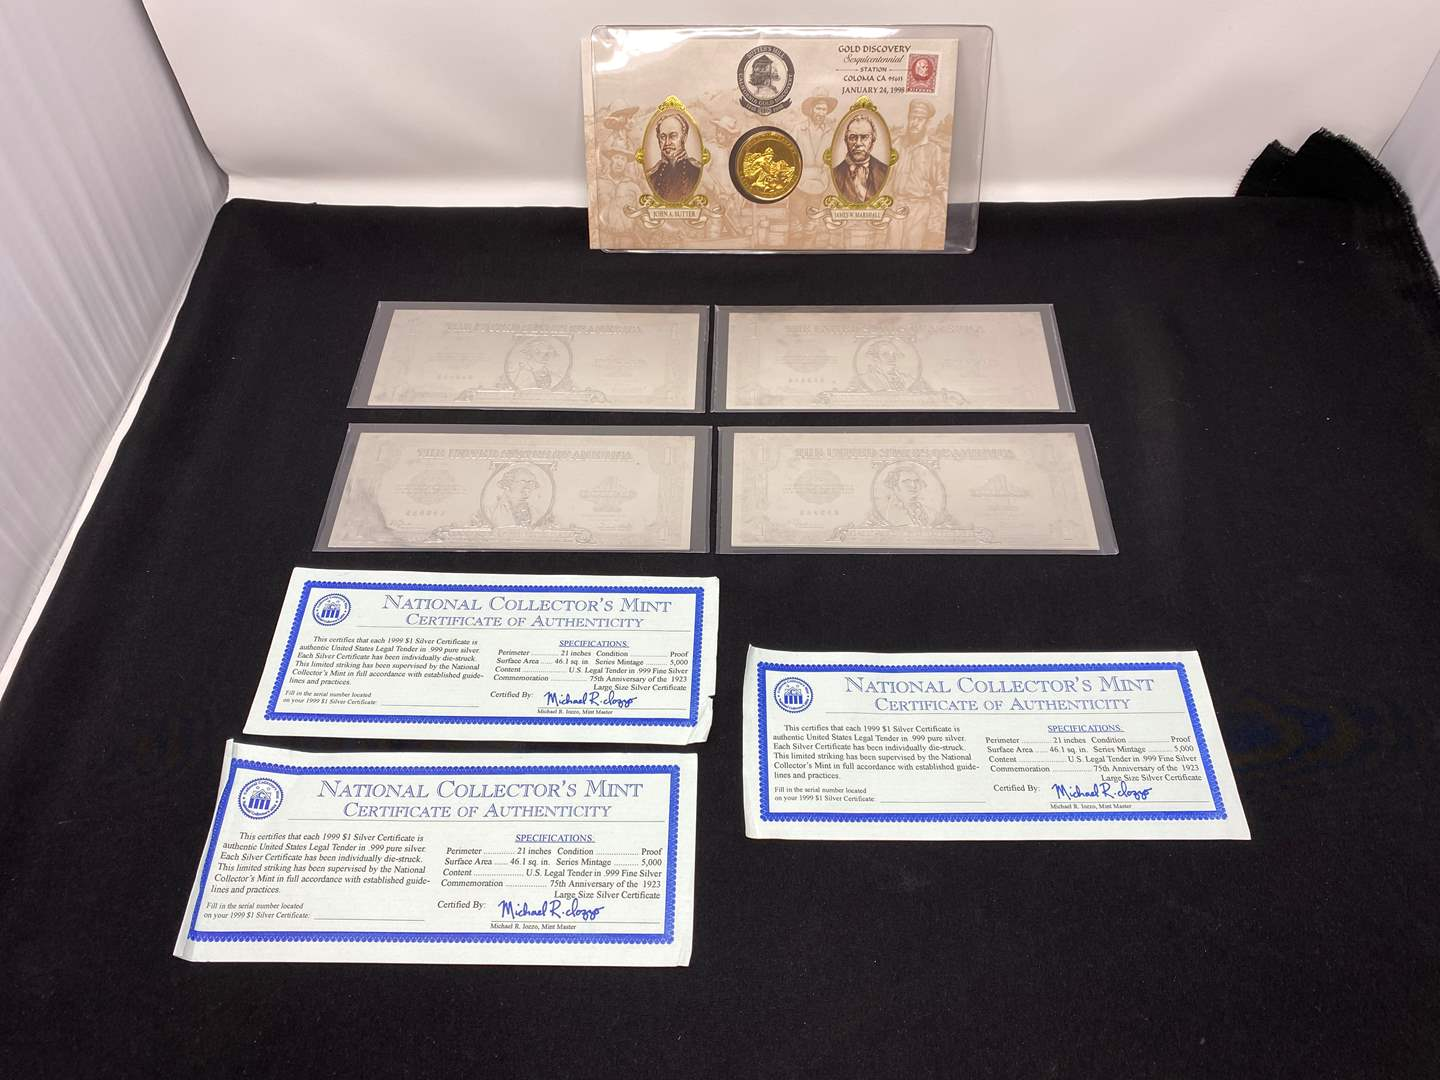 Lot # 209 - Four 1999 $1.00 Silver Certificates, California Gold Rush 150th Anniversary Medal  (main image)